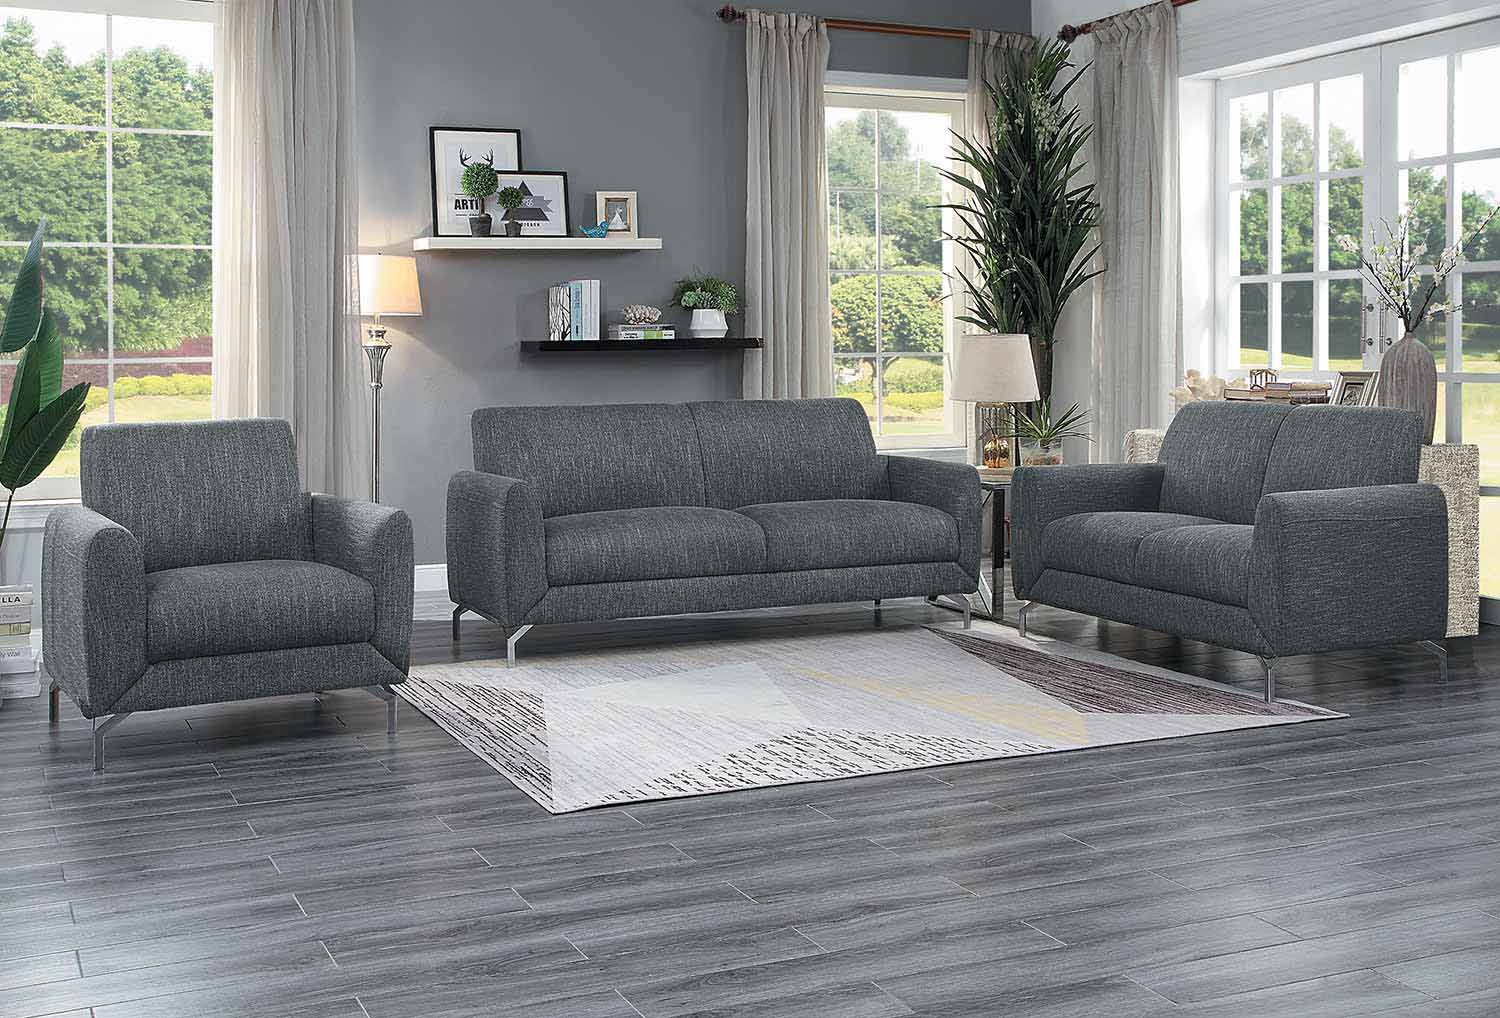 Homelegance Venture Sofa Set - Dark gray